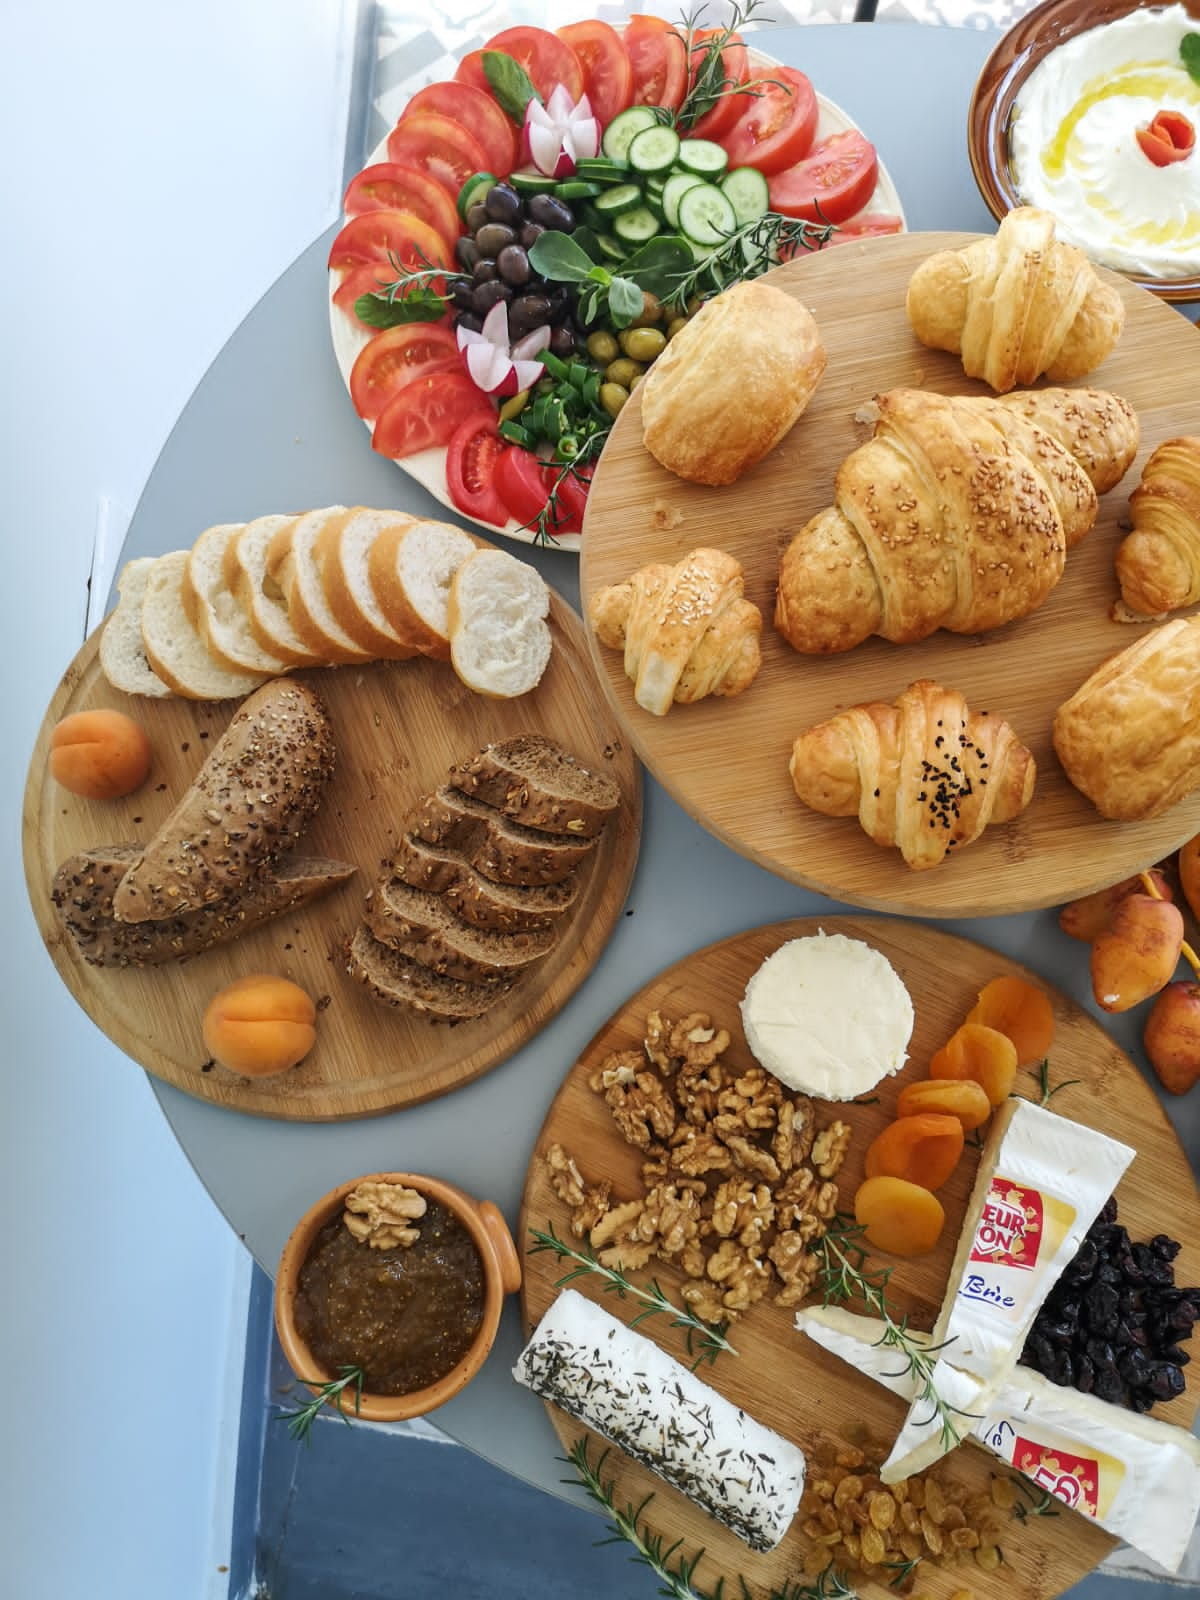 Charcuterie boards and baked croissants and pastries